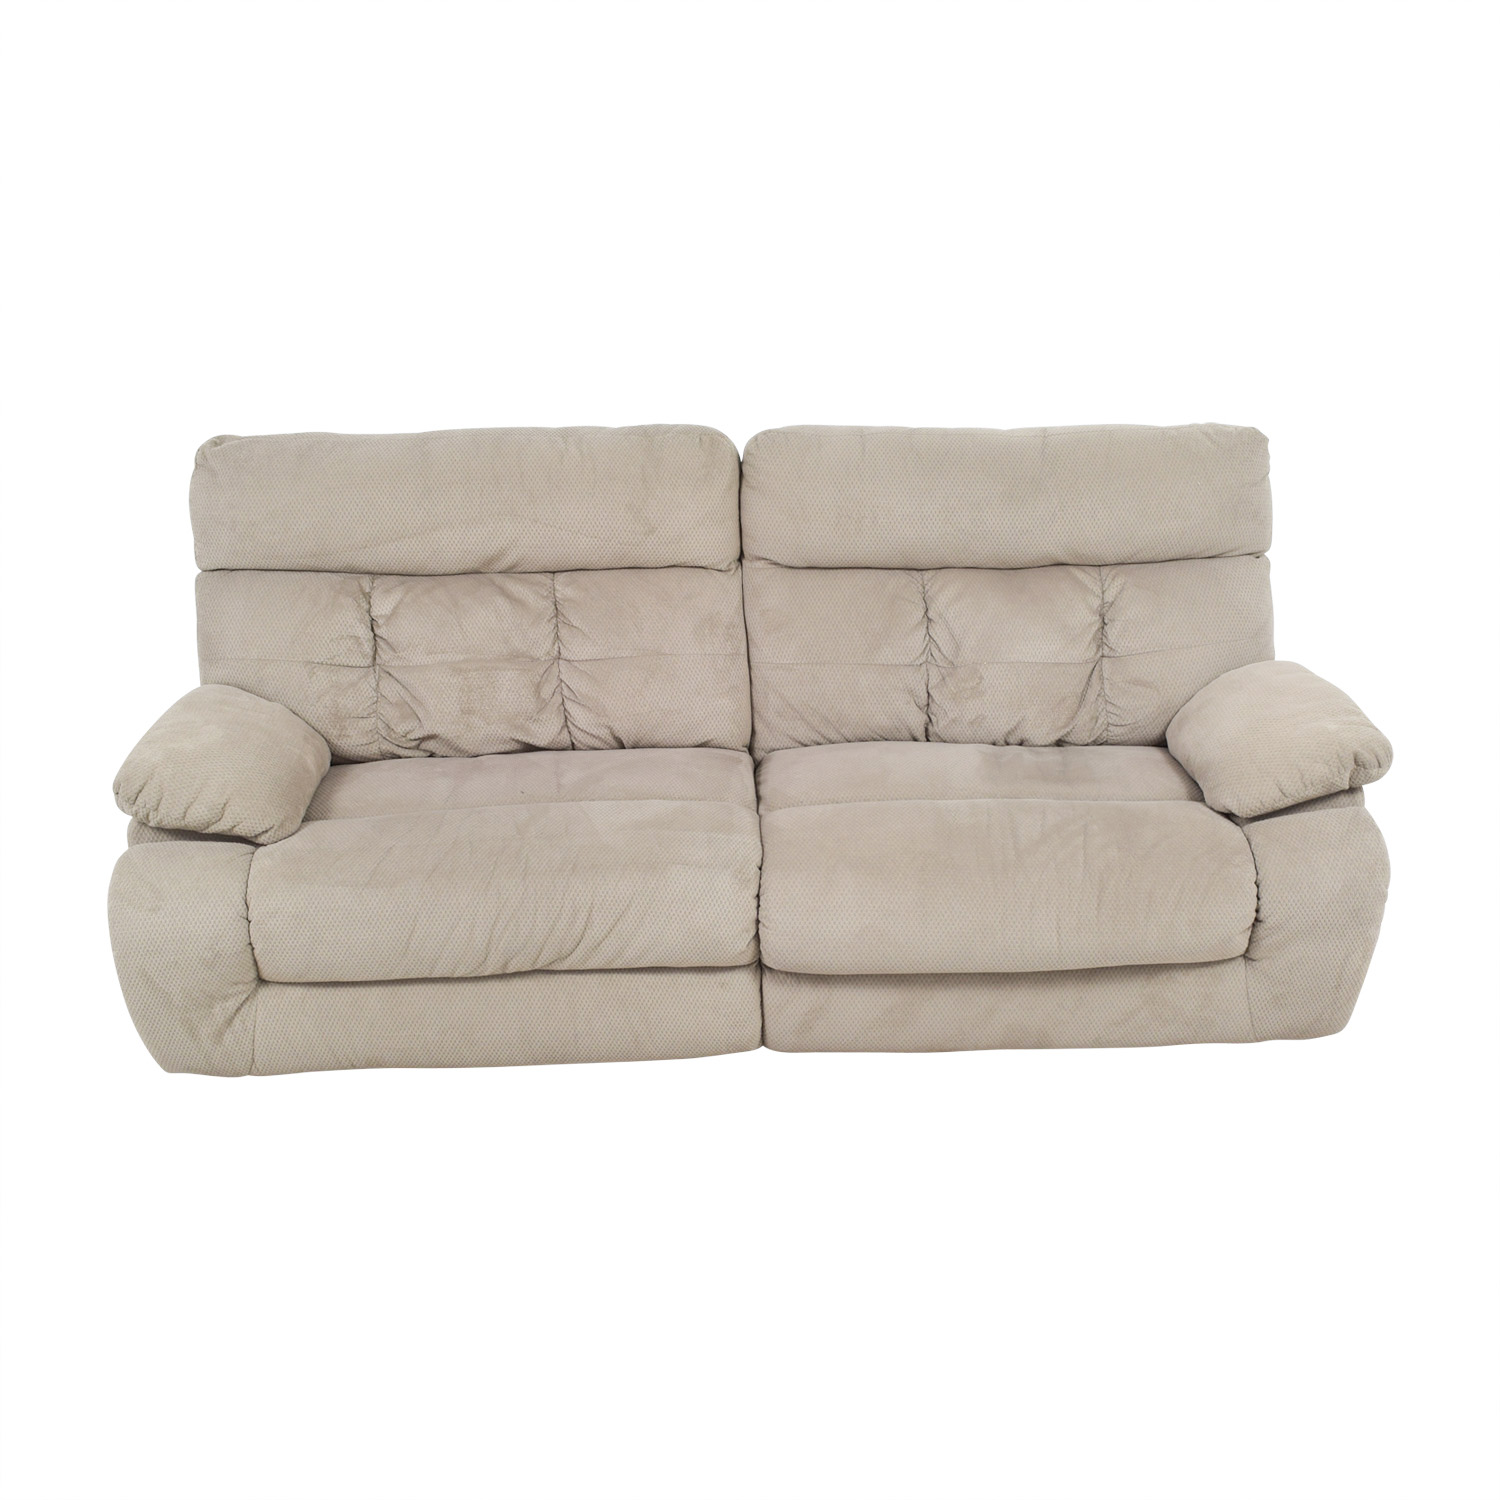 Ashley Furniture Ashley Furniture Beige Reclining Sofa